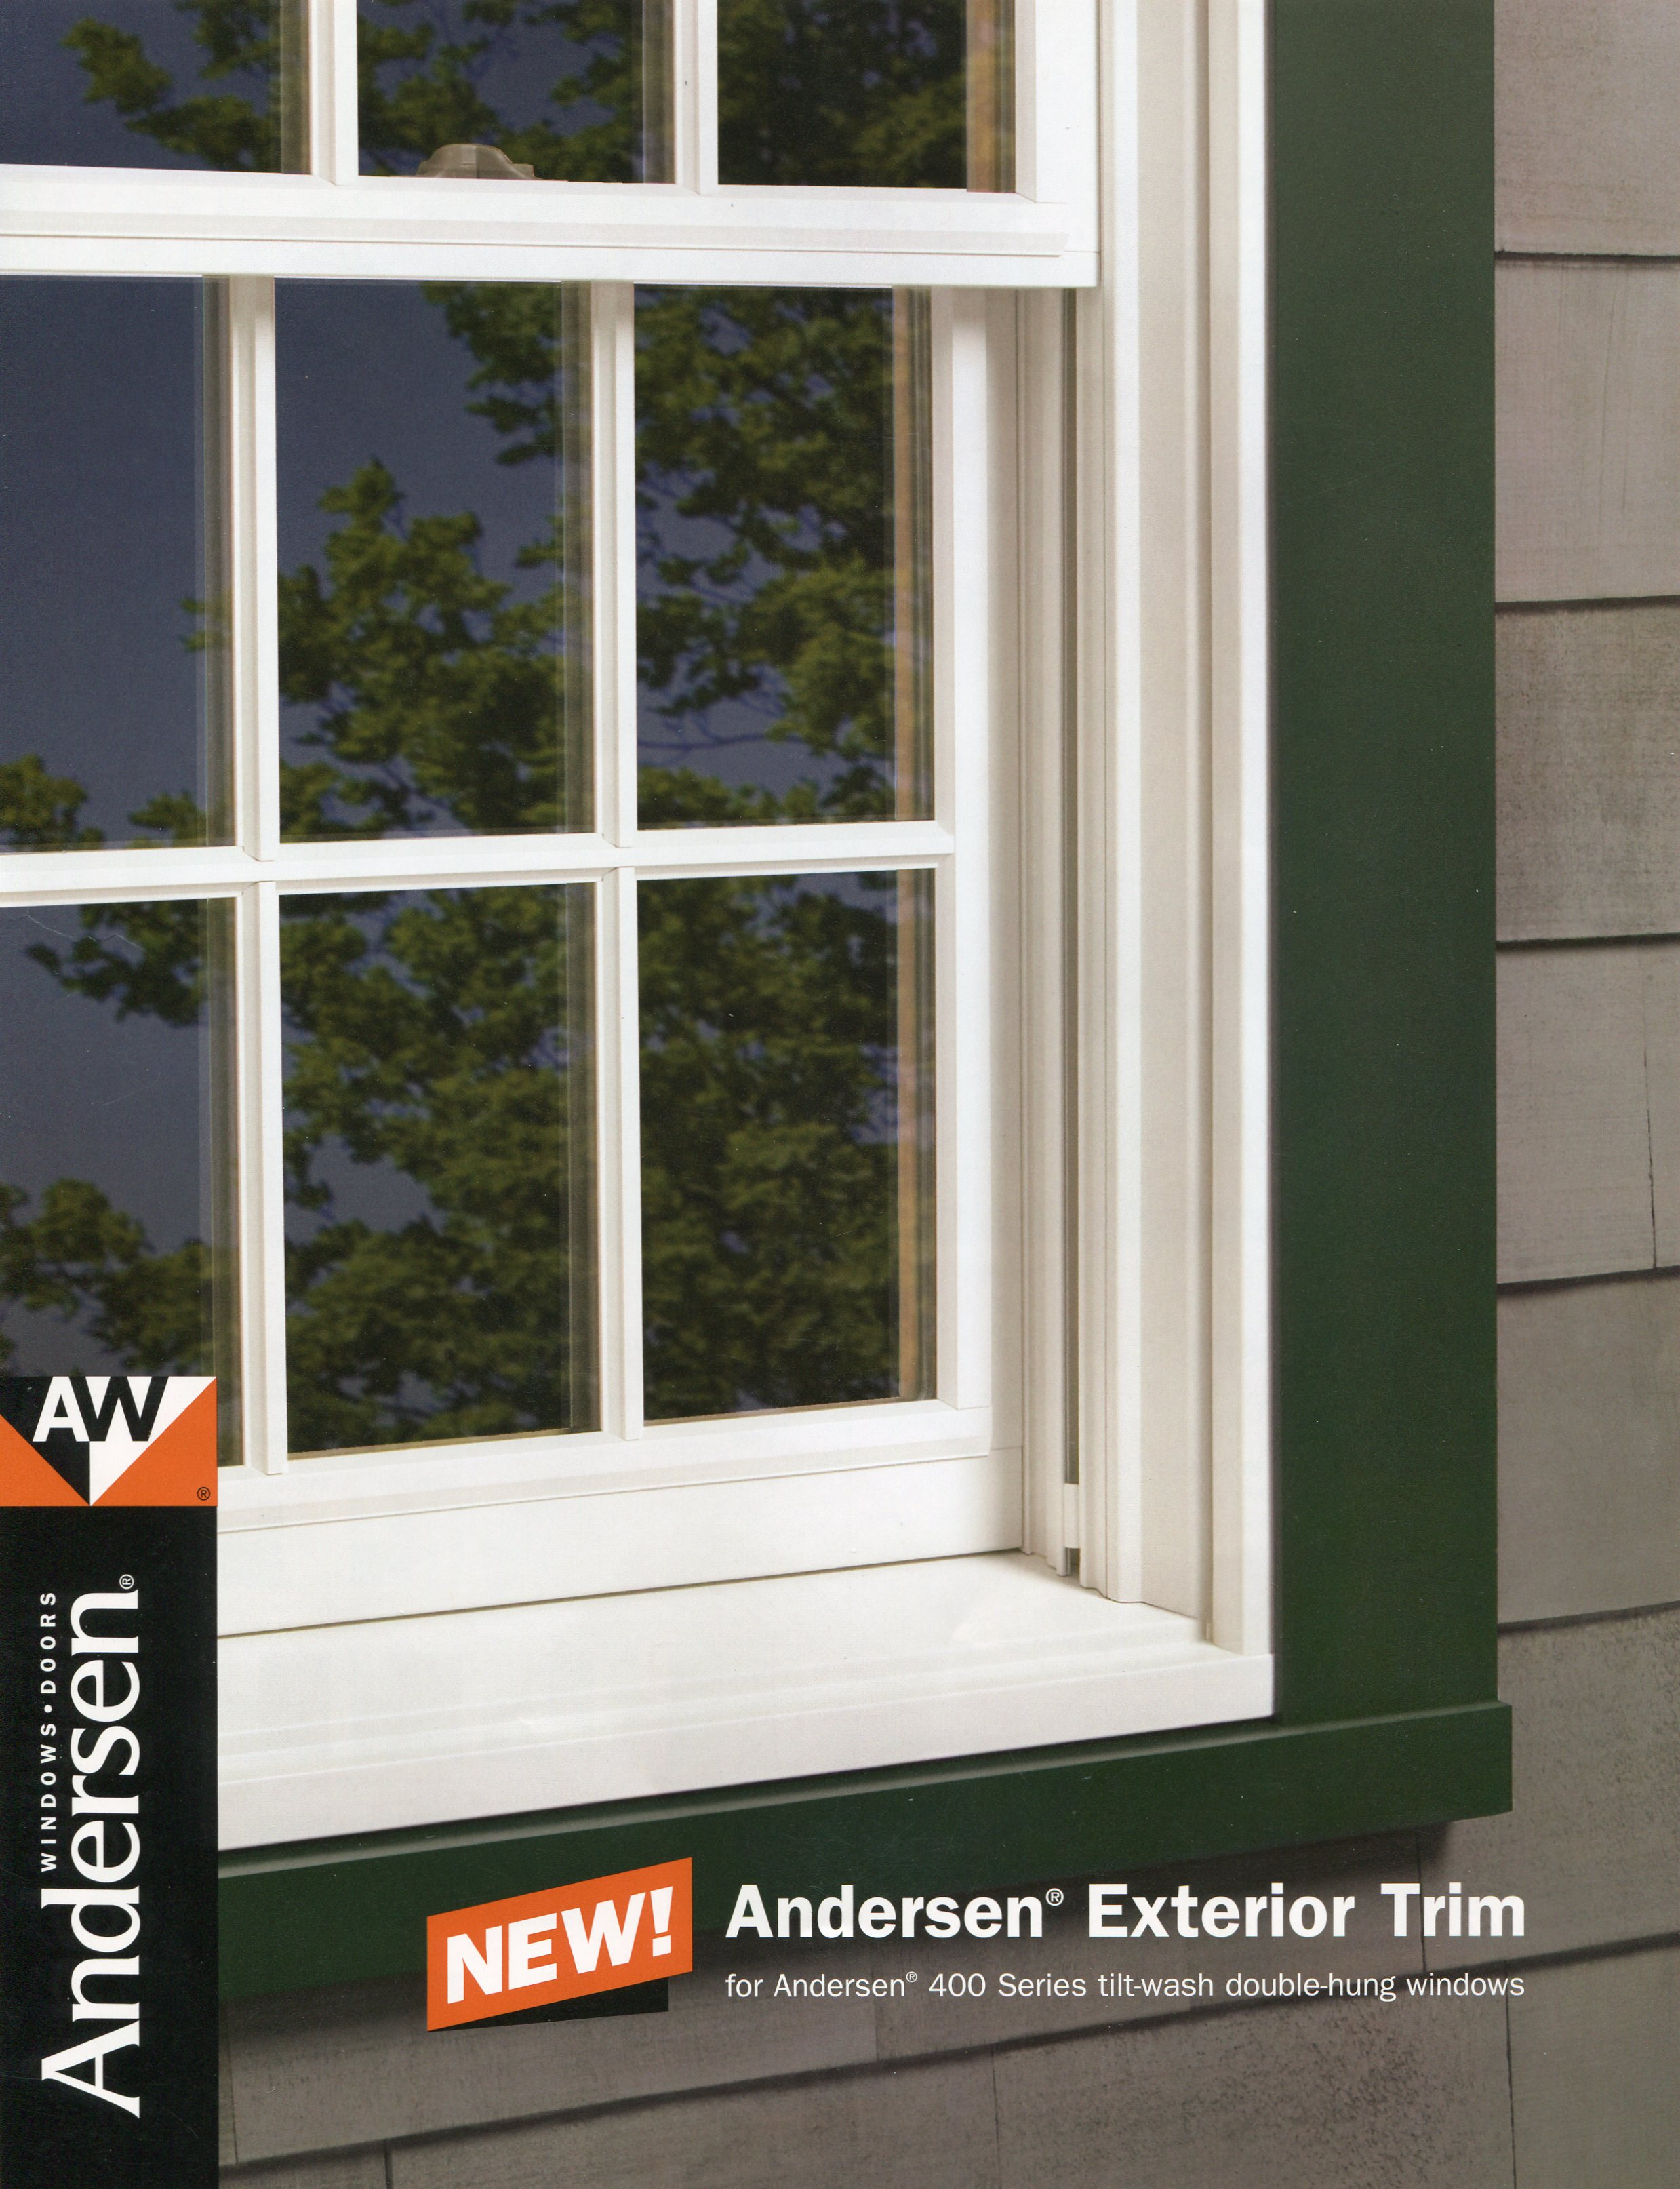 Replacement windows anderson renewal replacement windows for Andersen 400 series double hung windows cost